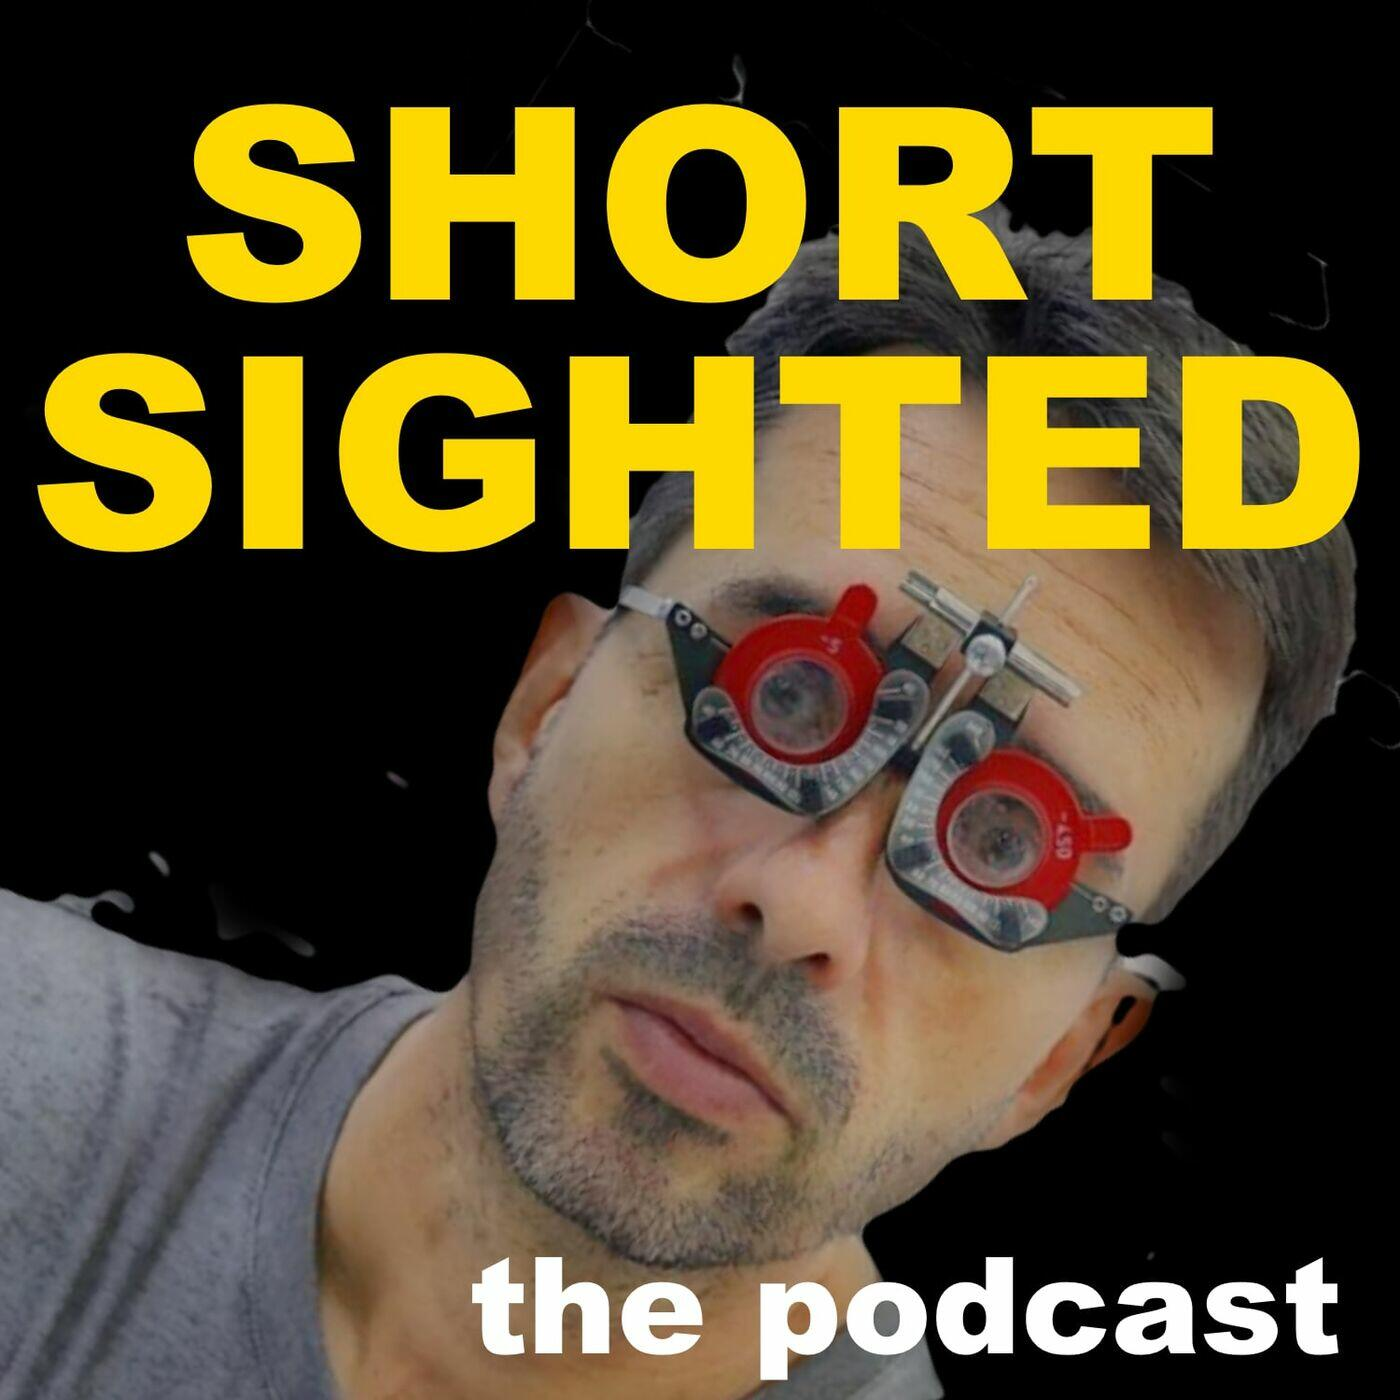 The Shortsighted Podcast